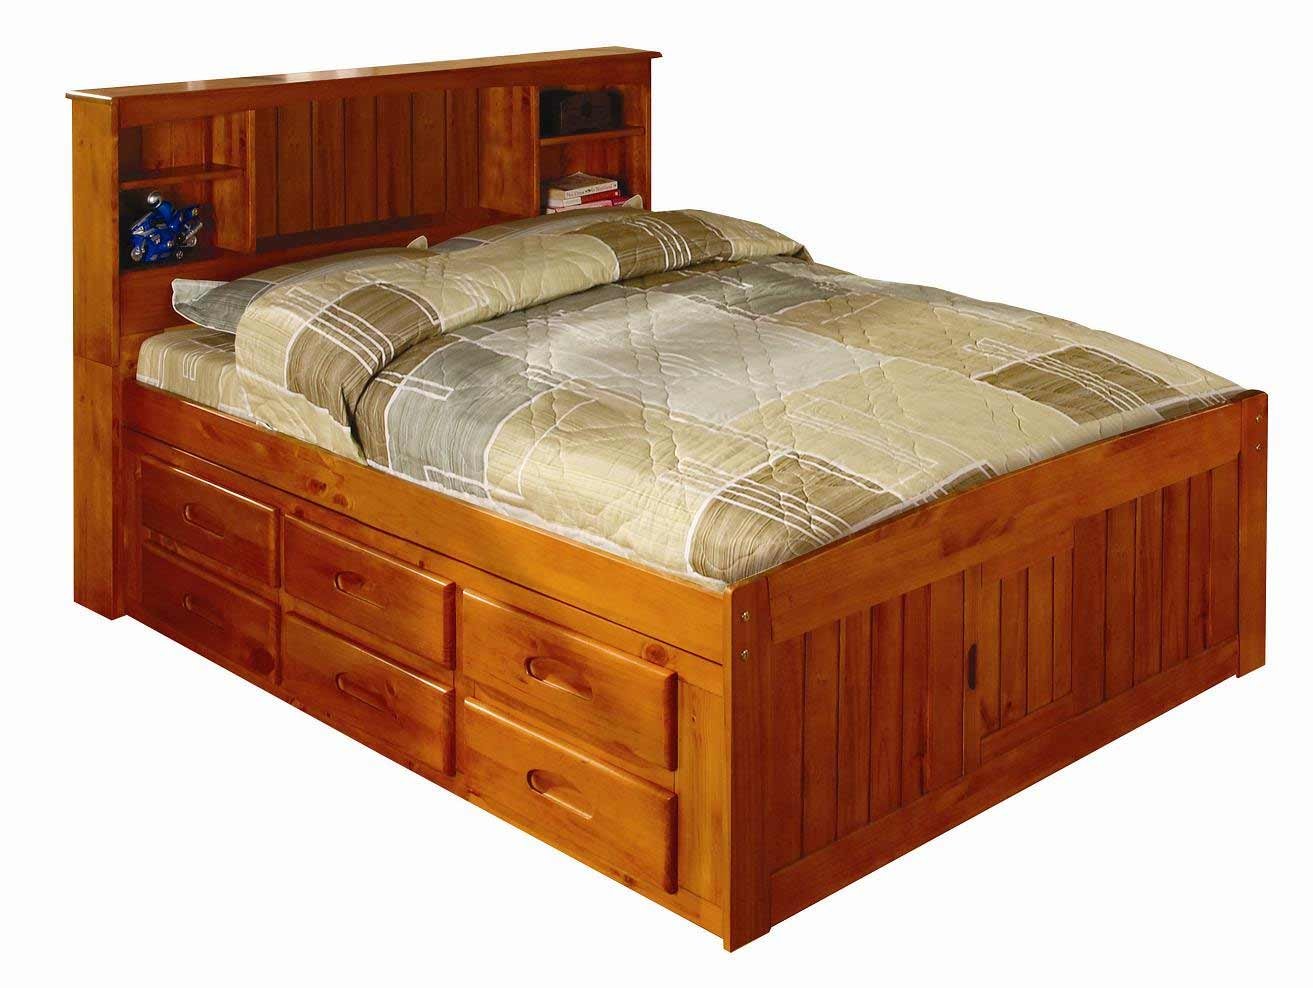 Full size captain beds for kids feel the home for Captains bed